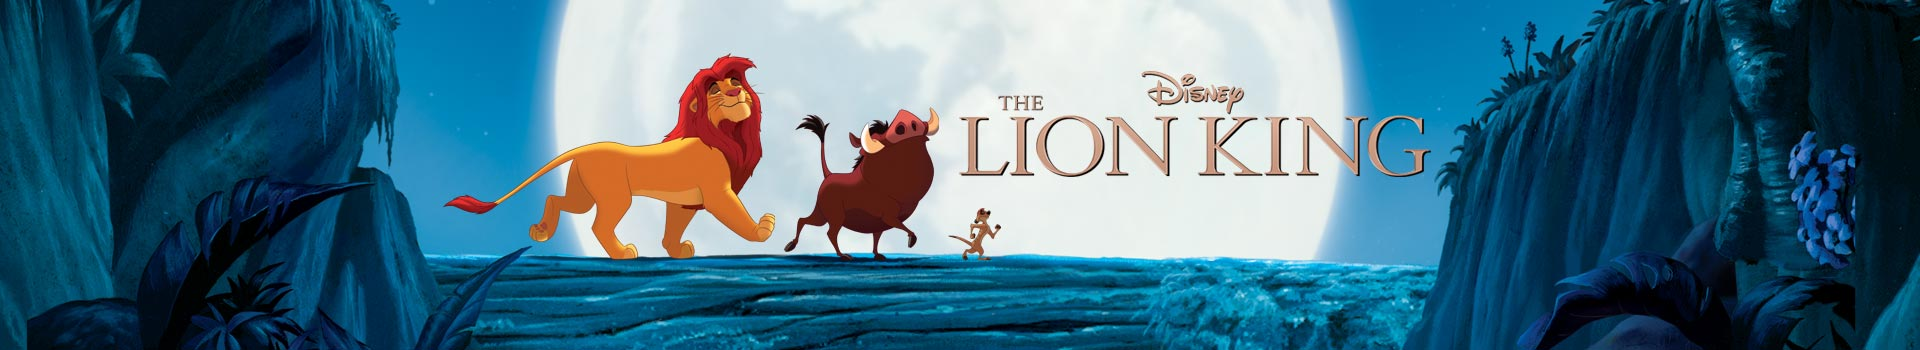 The Lion King - Official Merchandise